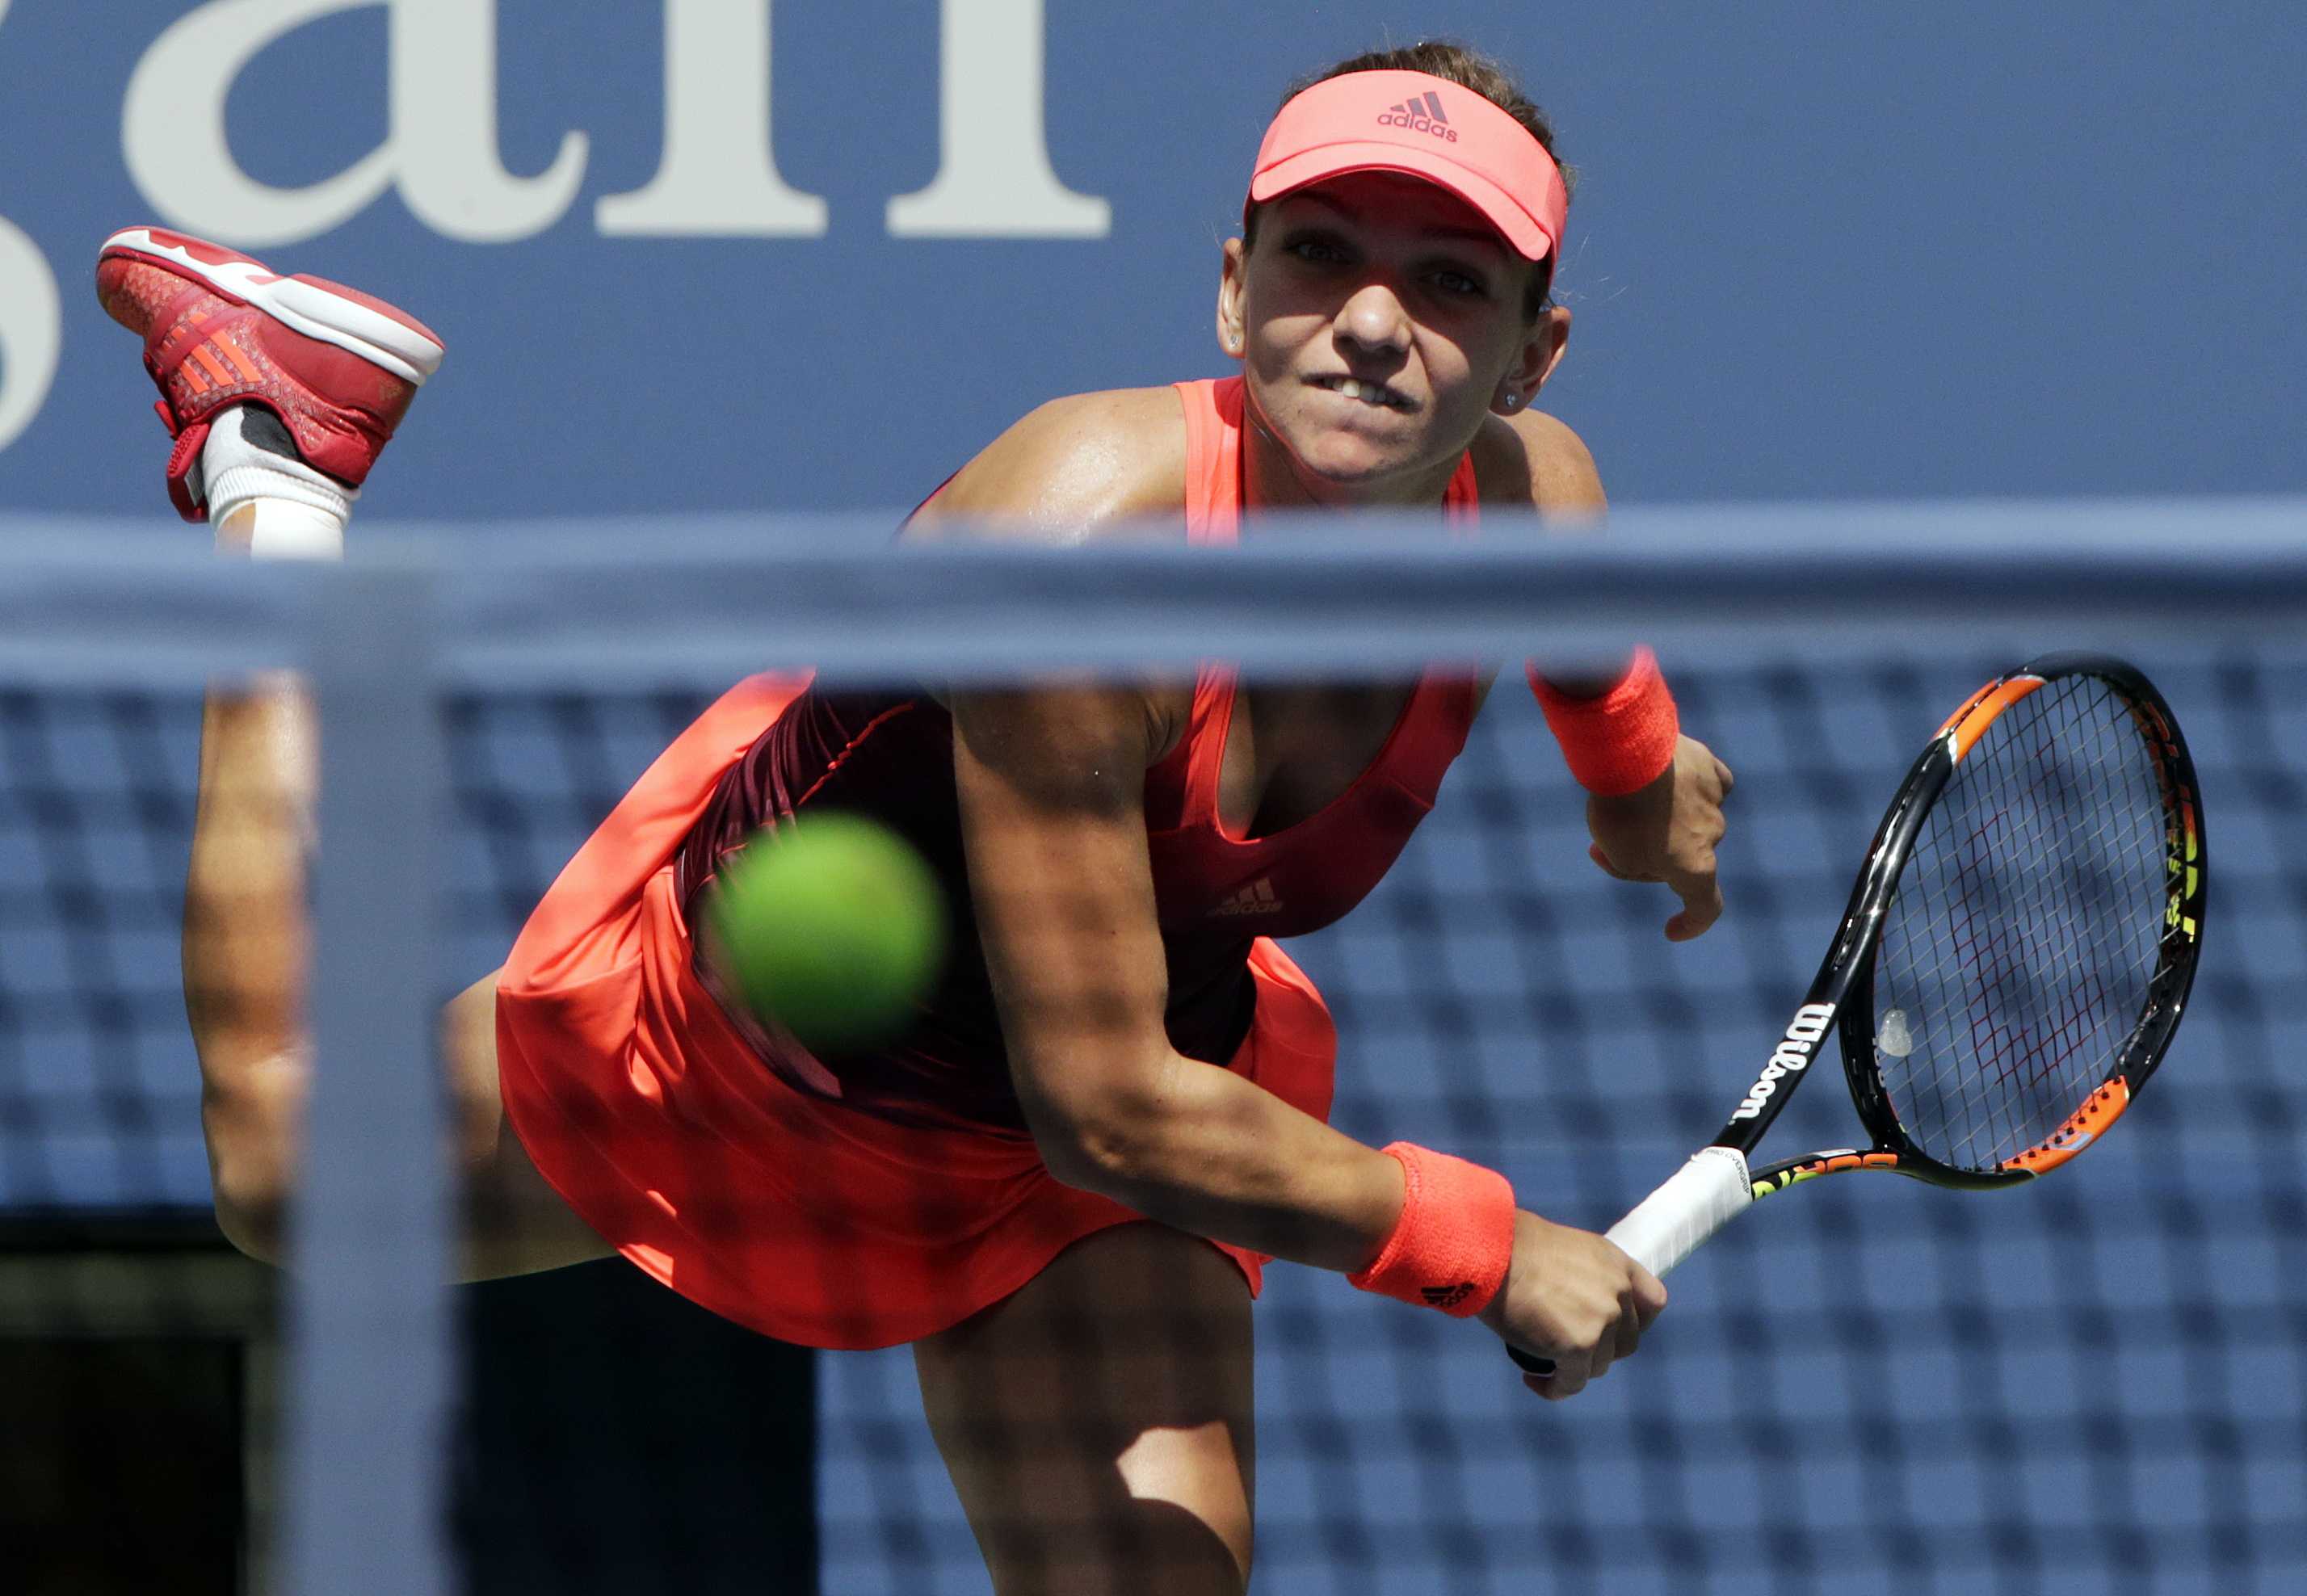 Simona Halep, of Romania, serves against Marina Erakovic, of New Zealand, during the first round of the U.S. Open tennis tournament, Tuesday, Sept. 1, 2015, in New York. (AP Photo/Charles Krupa)